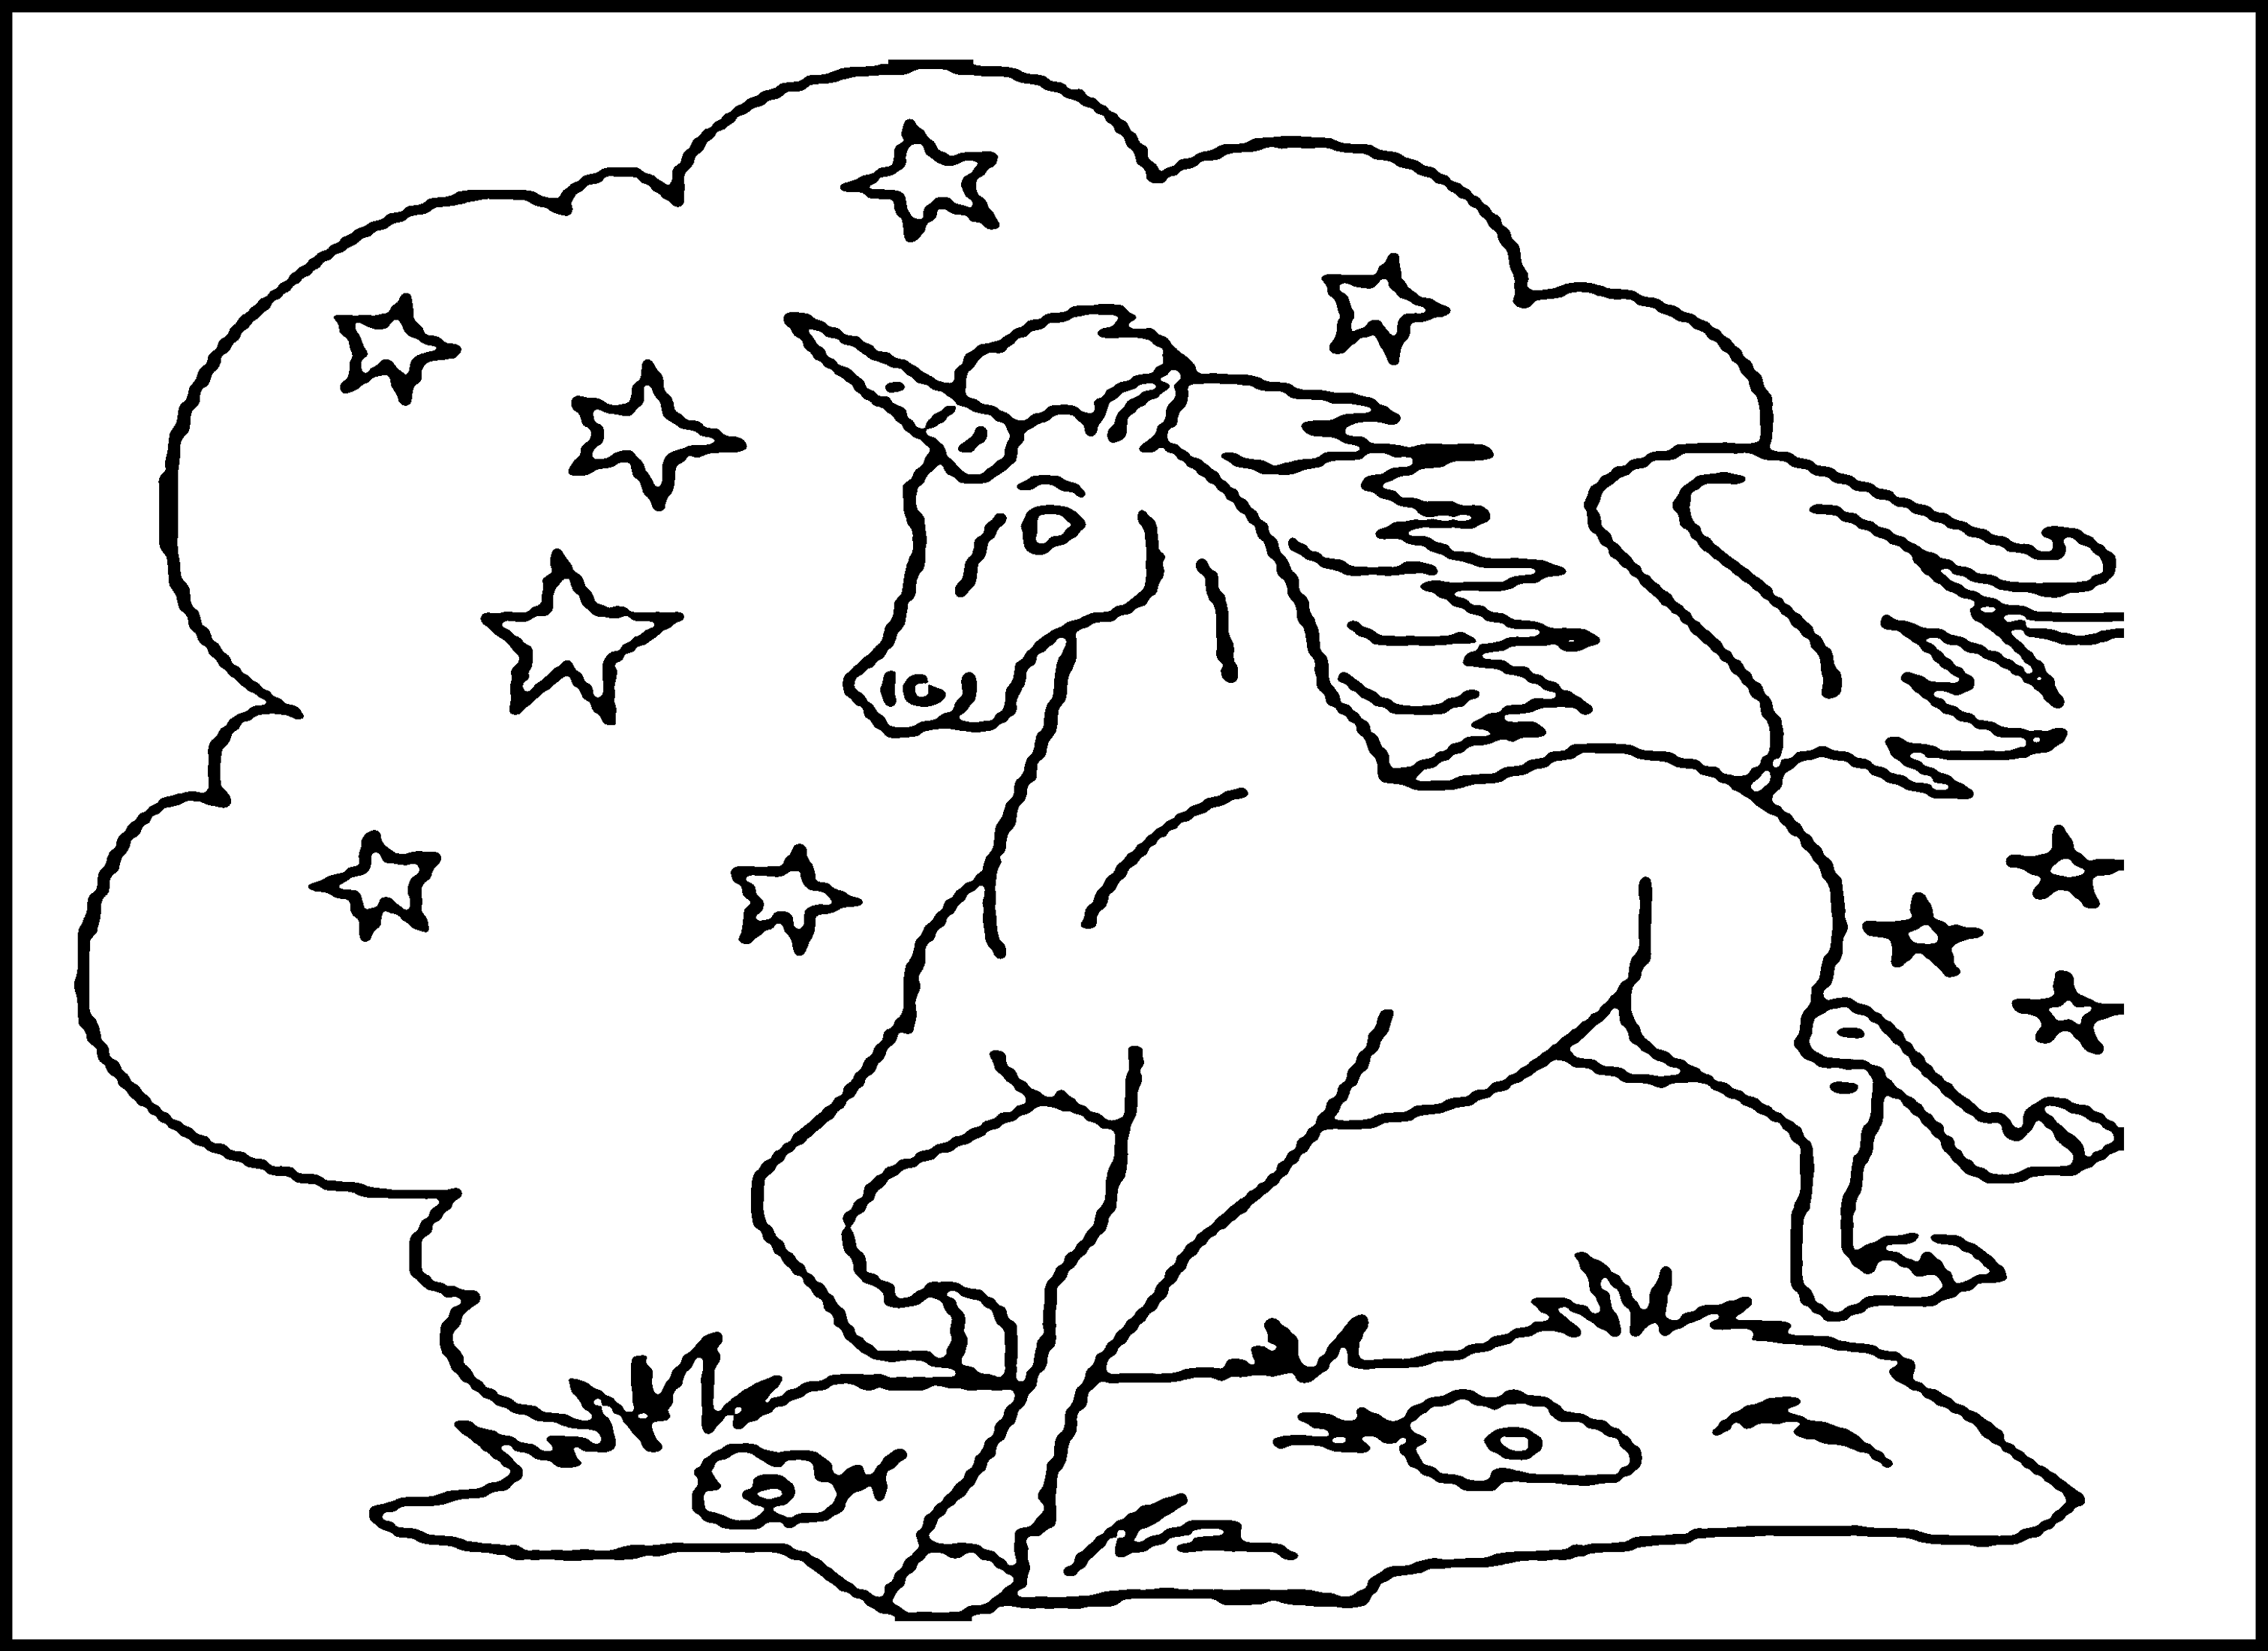 coloring sheet unicorn coloring pictures to print unicorn rainbow coloring pages coloring home unicorn sheet print coloring pictures coloring to